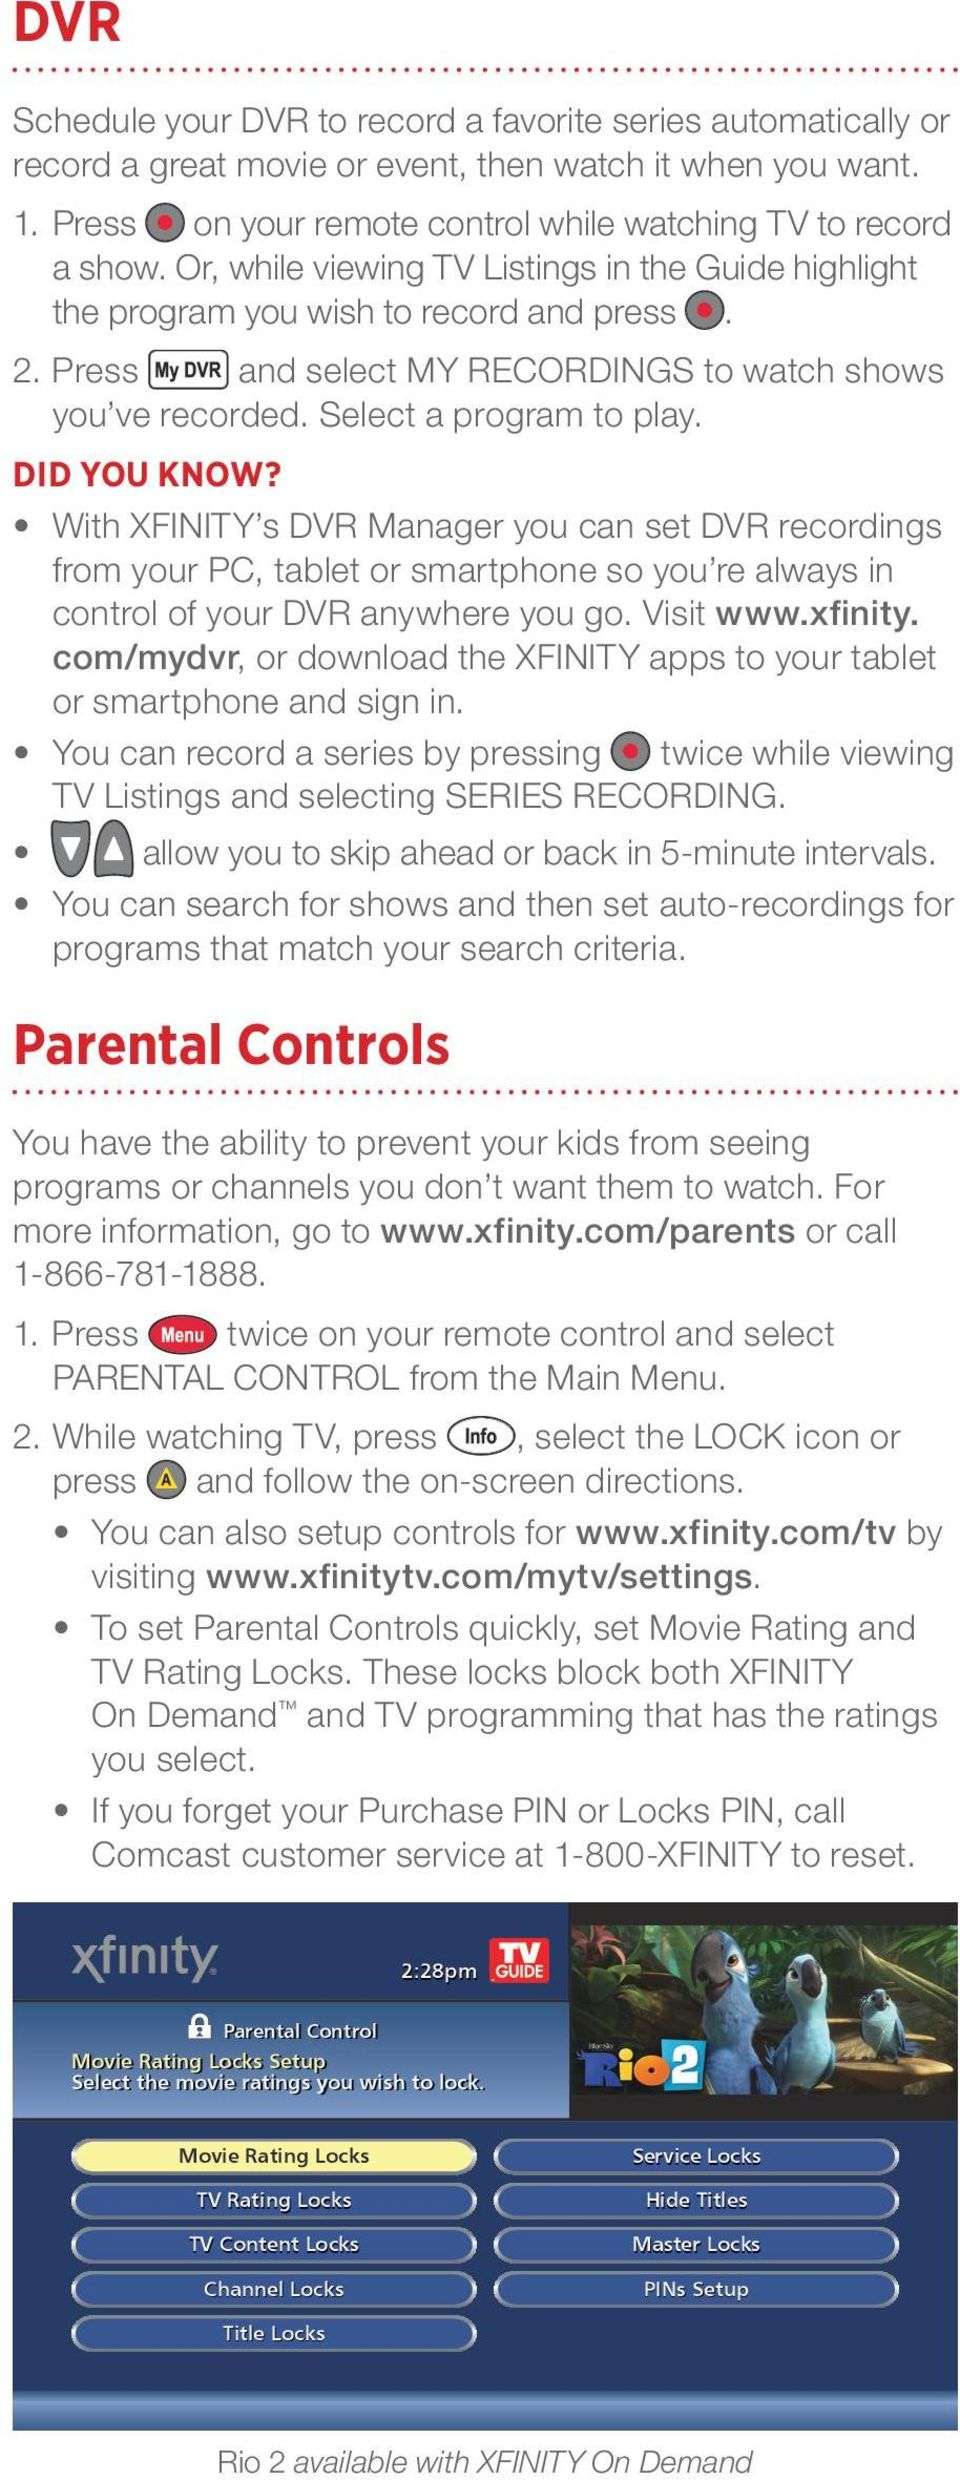 With XFINITY s DVR Manager you can set DVR recordings from your PC, tablet or smartphone so you re always in control of your DVR anywhere you go. Visit www.xfinity.